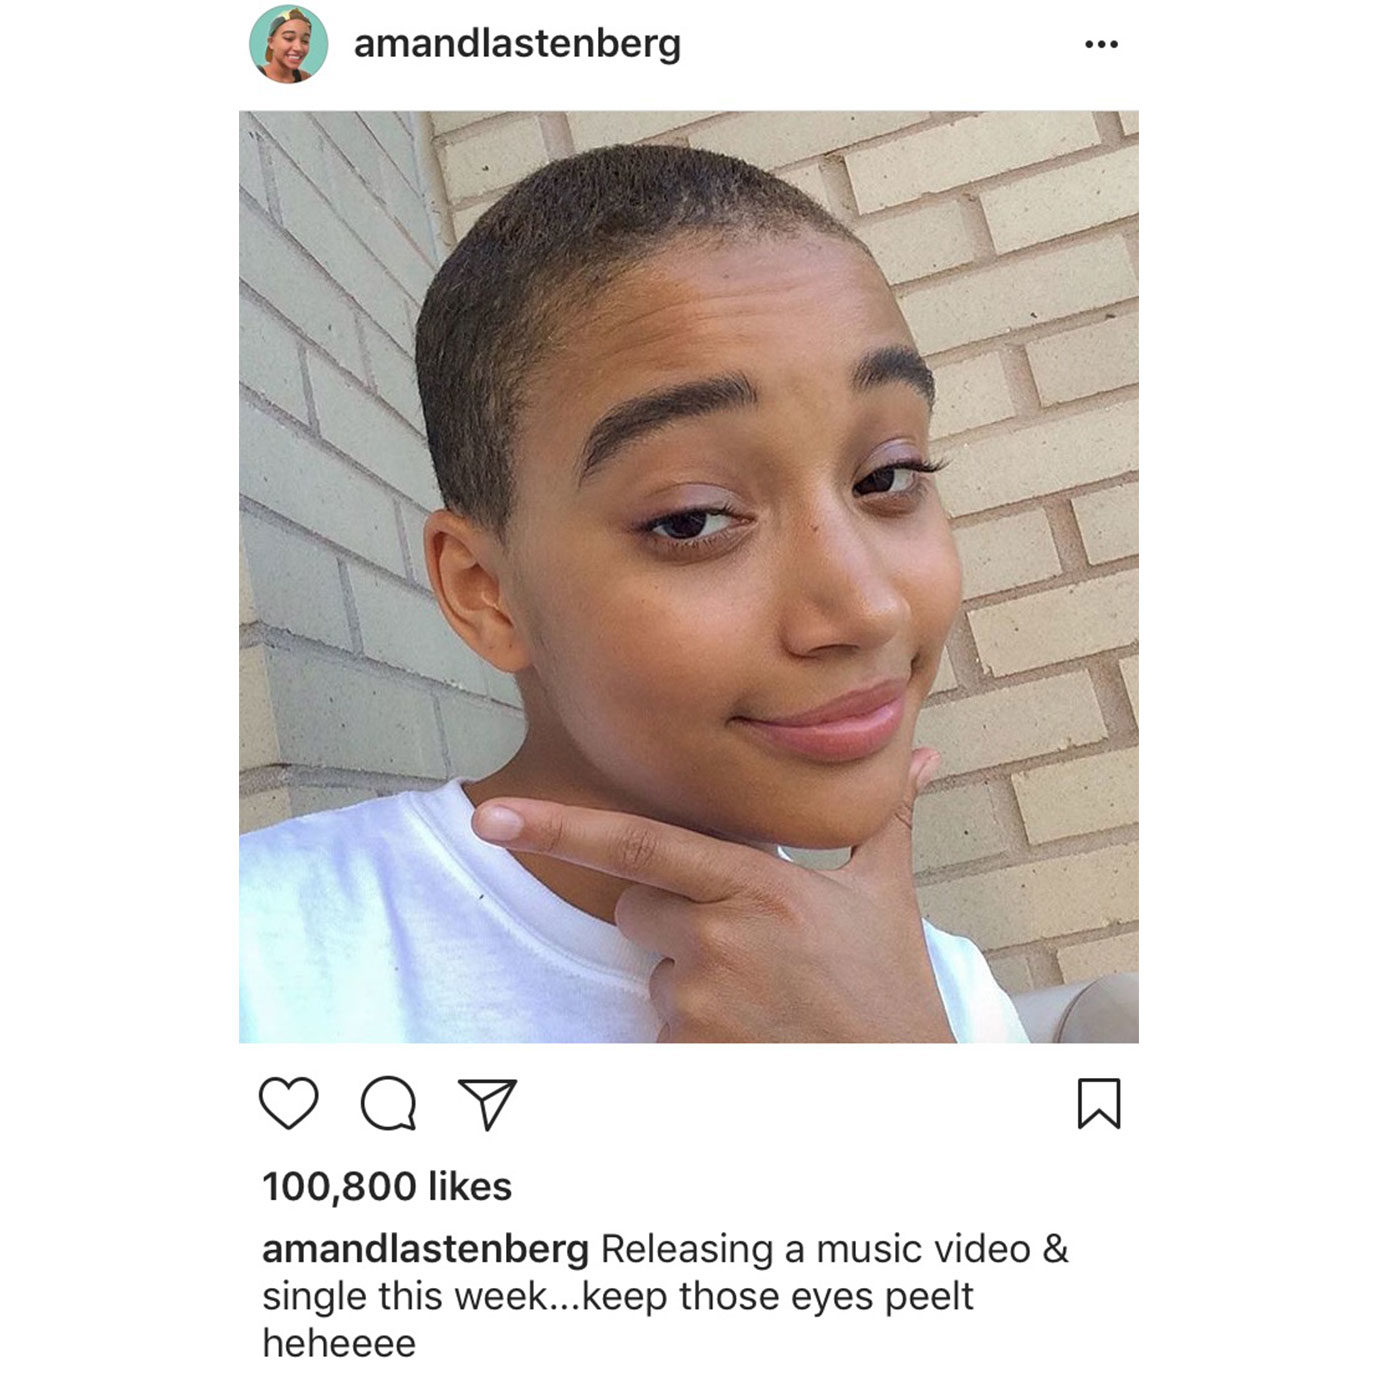 via @amandlastenberg on Instagram